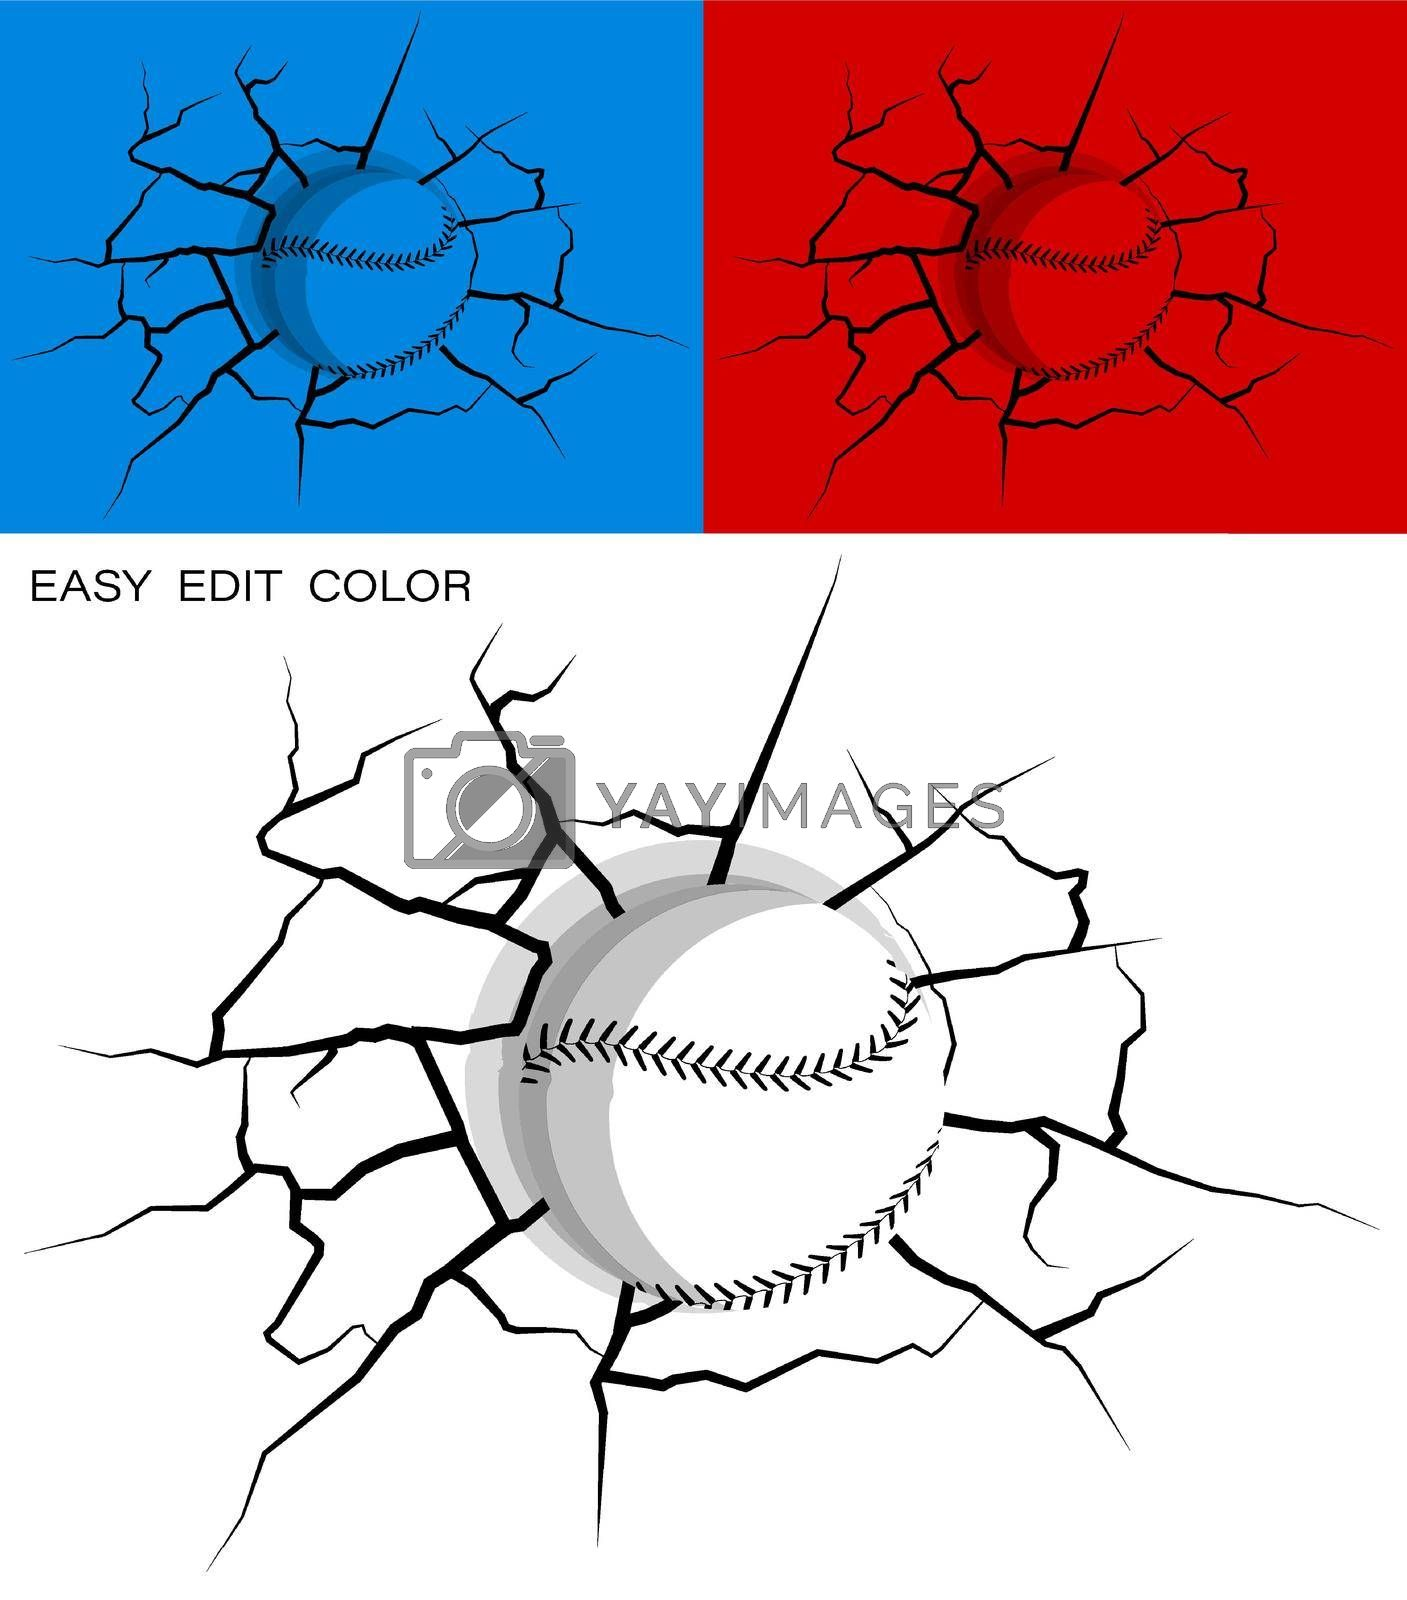 baseball hit wall powerfully and damaged, cracks on wall. Sports design element. American national sport. Active lifestyle. Vector on white or color background with cracks